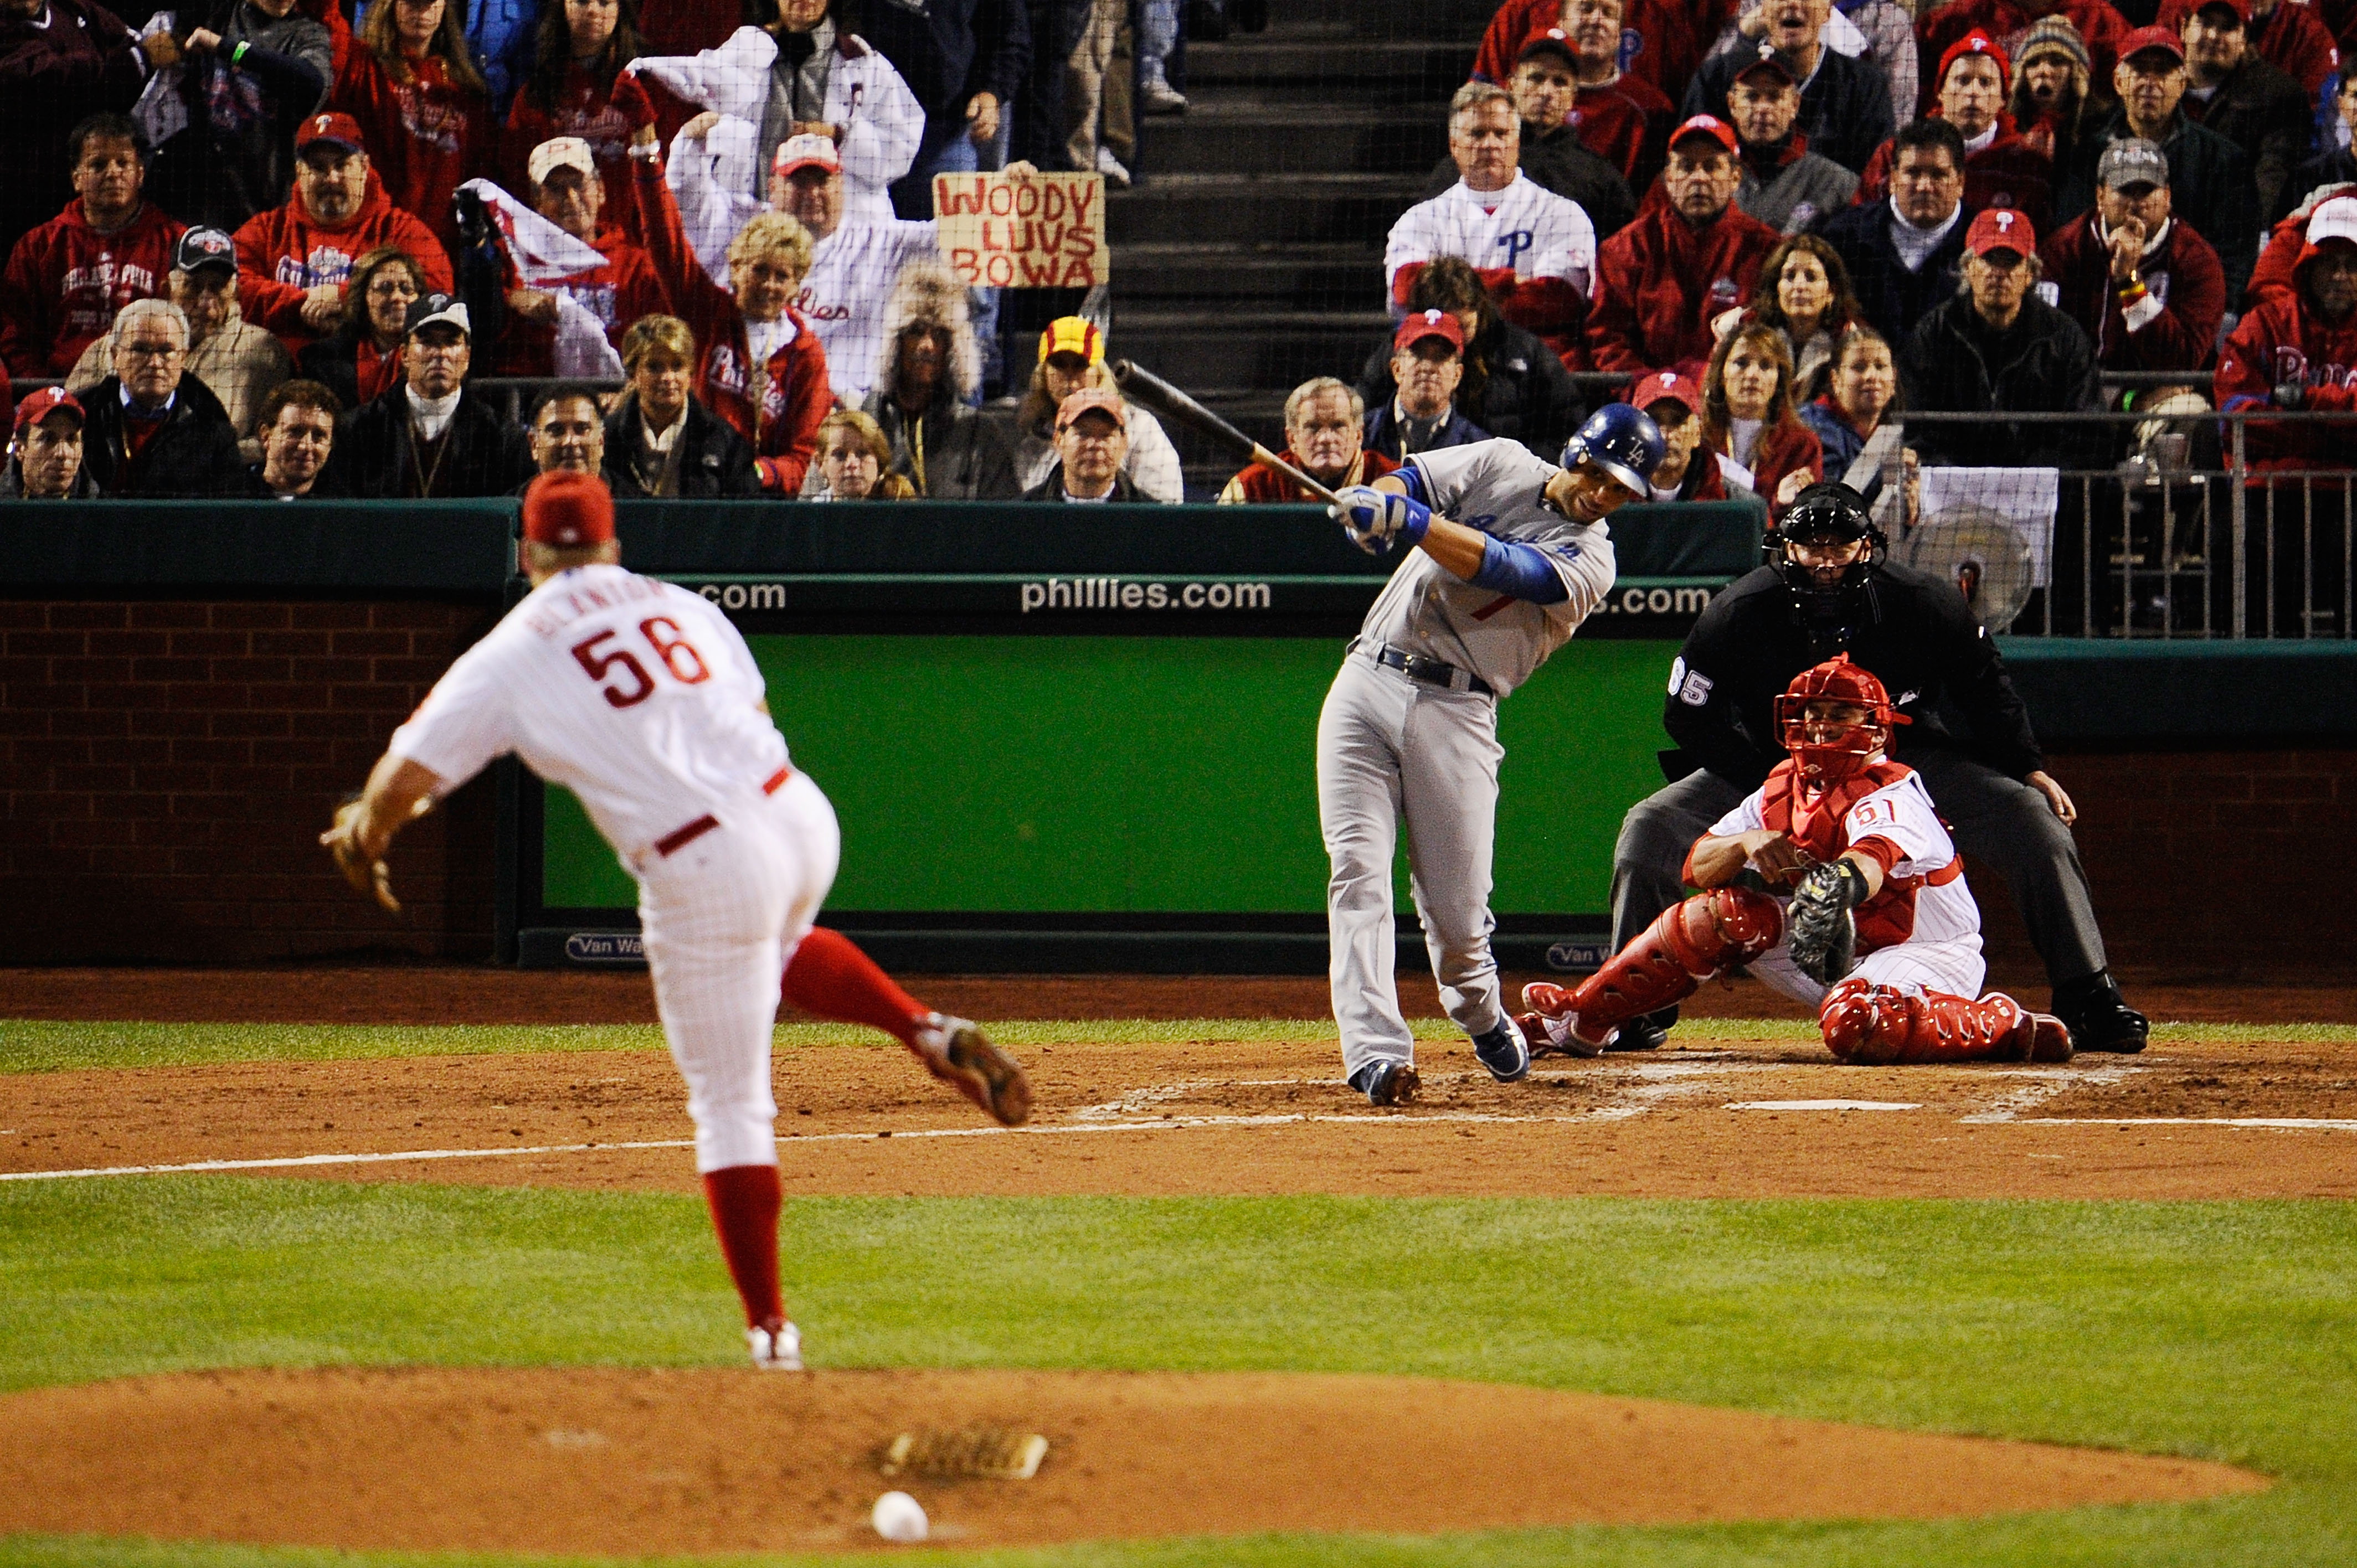 PHILADELPHIA - OCTOBER 19:  James Loney #7 of the Los Angeles Dodgers hits a RBI single in the top of the fourth inning against Joe Blanton #56 of the Philadelphia Phillies in Game Four of the NLCS during the 2009 MLB Playoffs at Citizens Bank Park on Oct